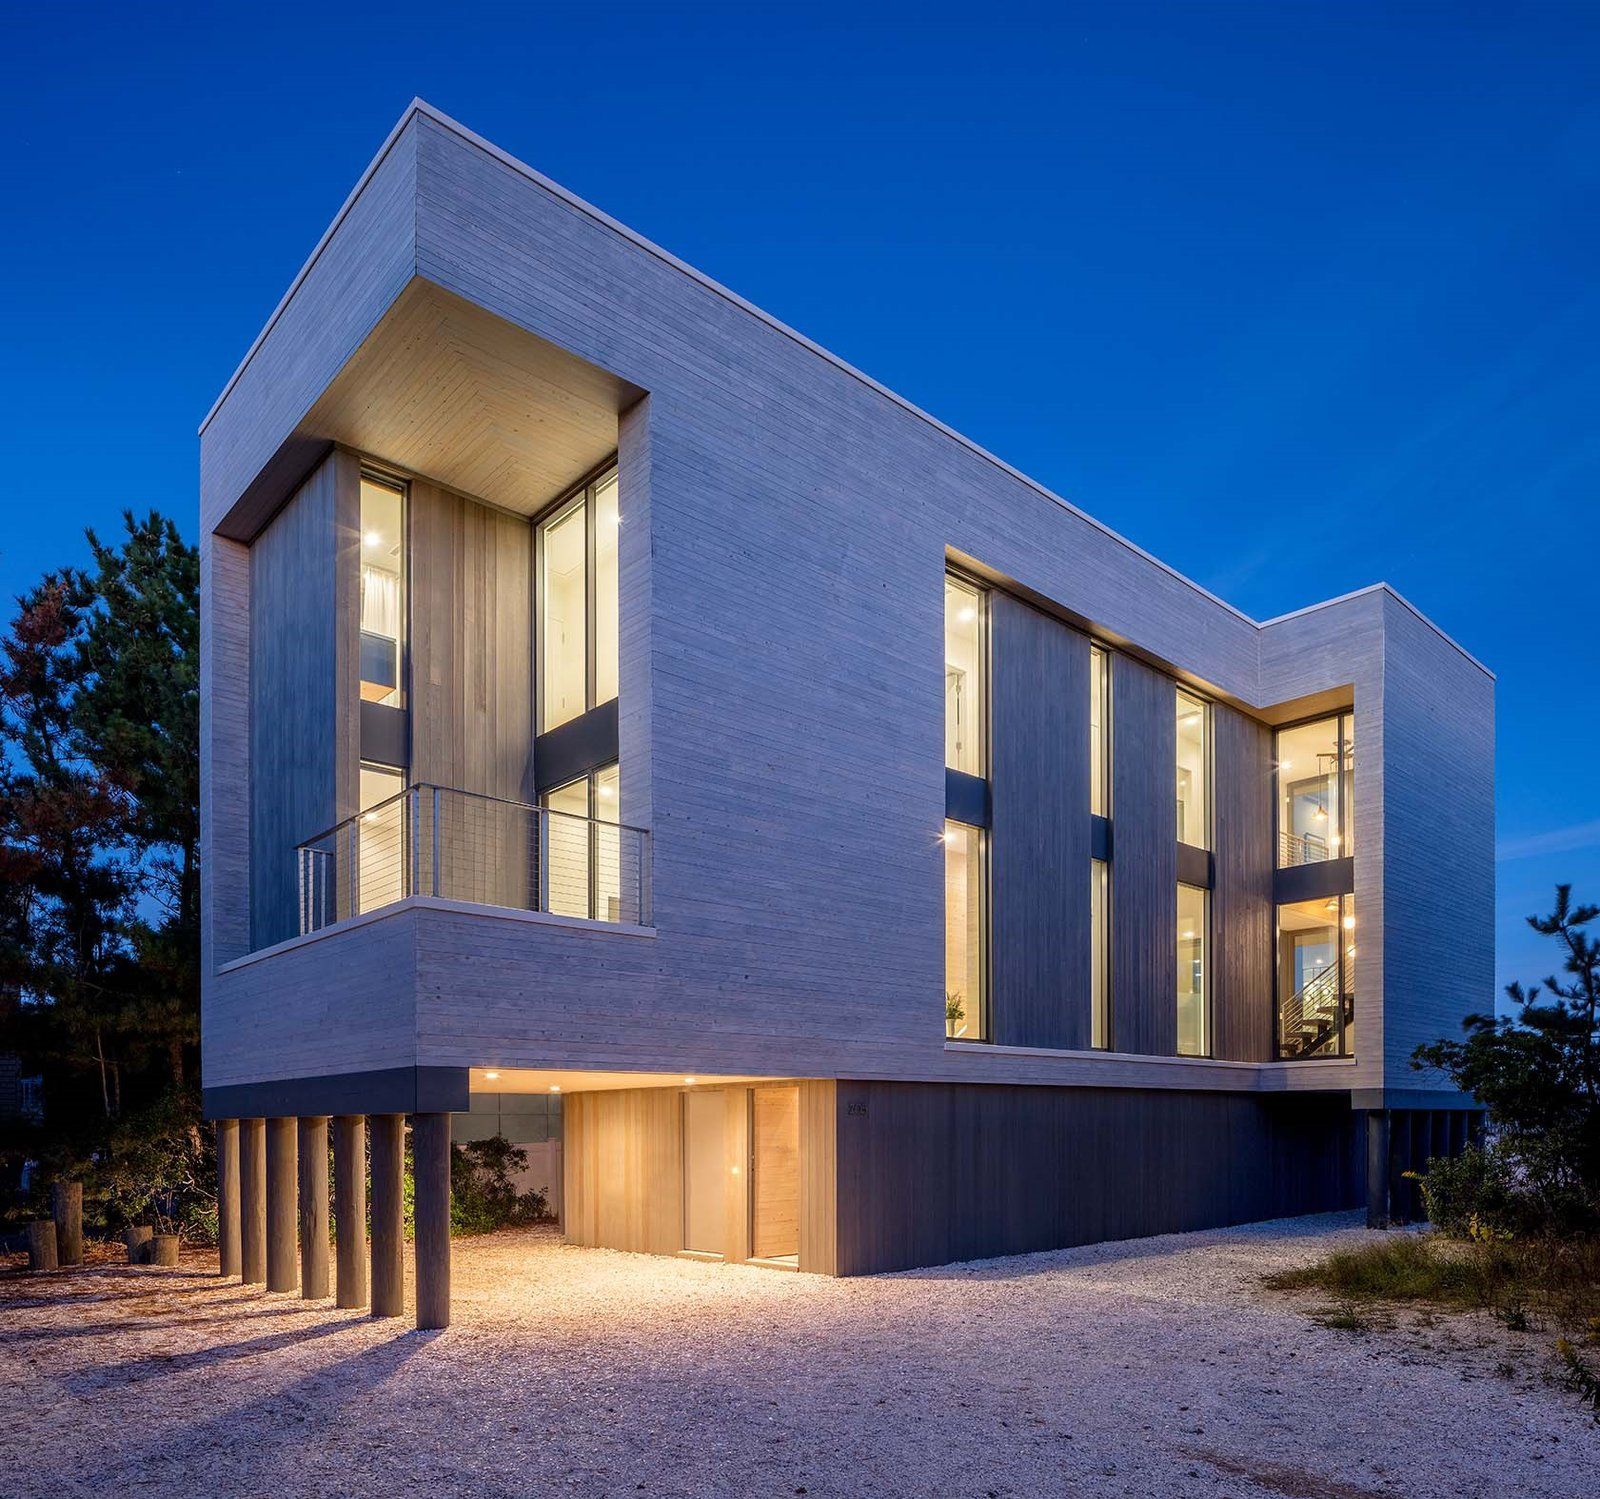 Beach Haven Residence, Full Exterior at Twilight.   Beach Haven Residence by Specht Architects